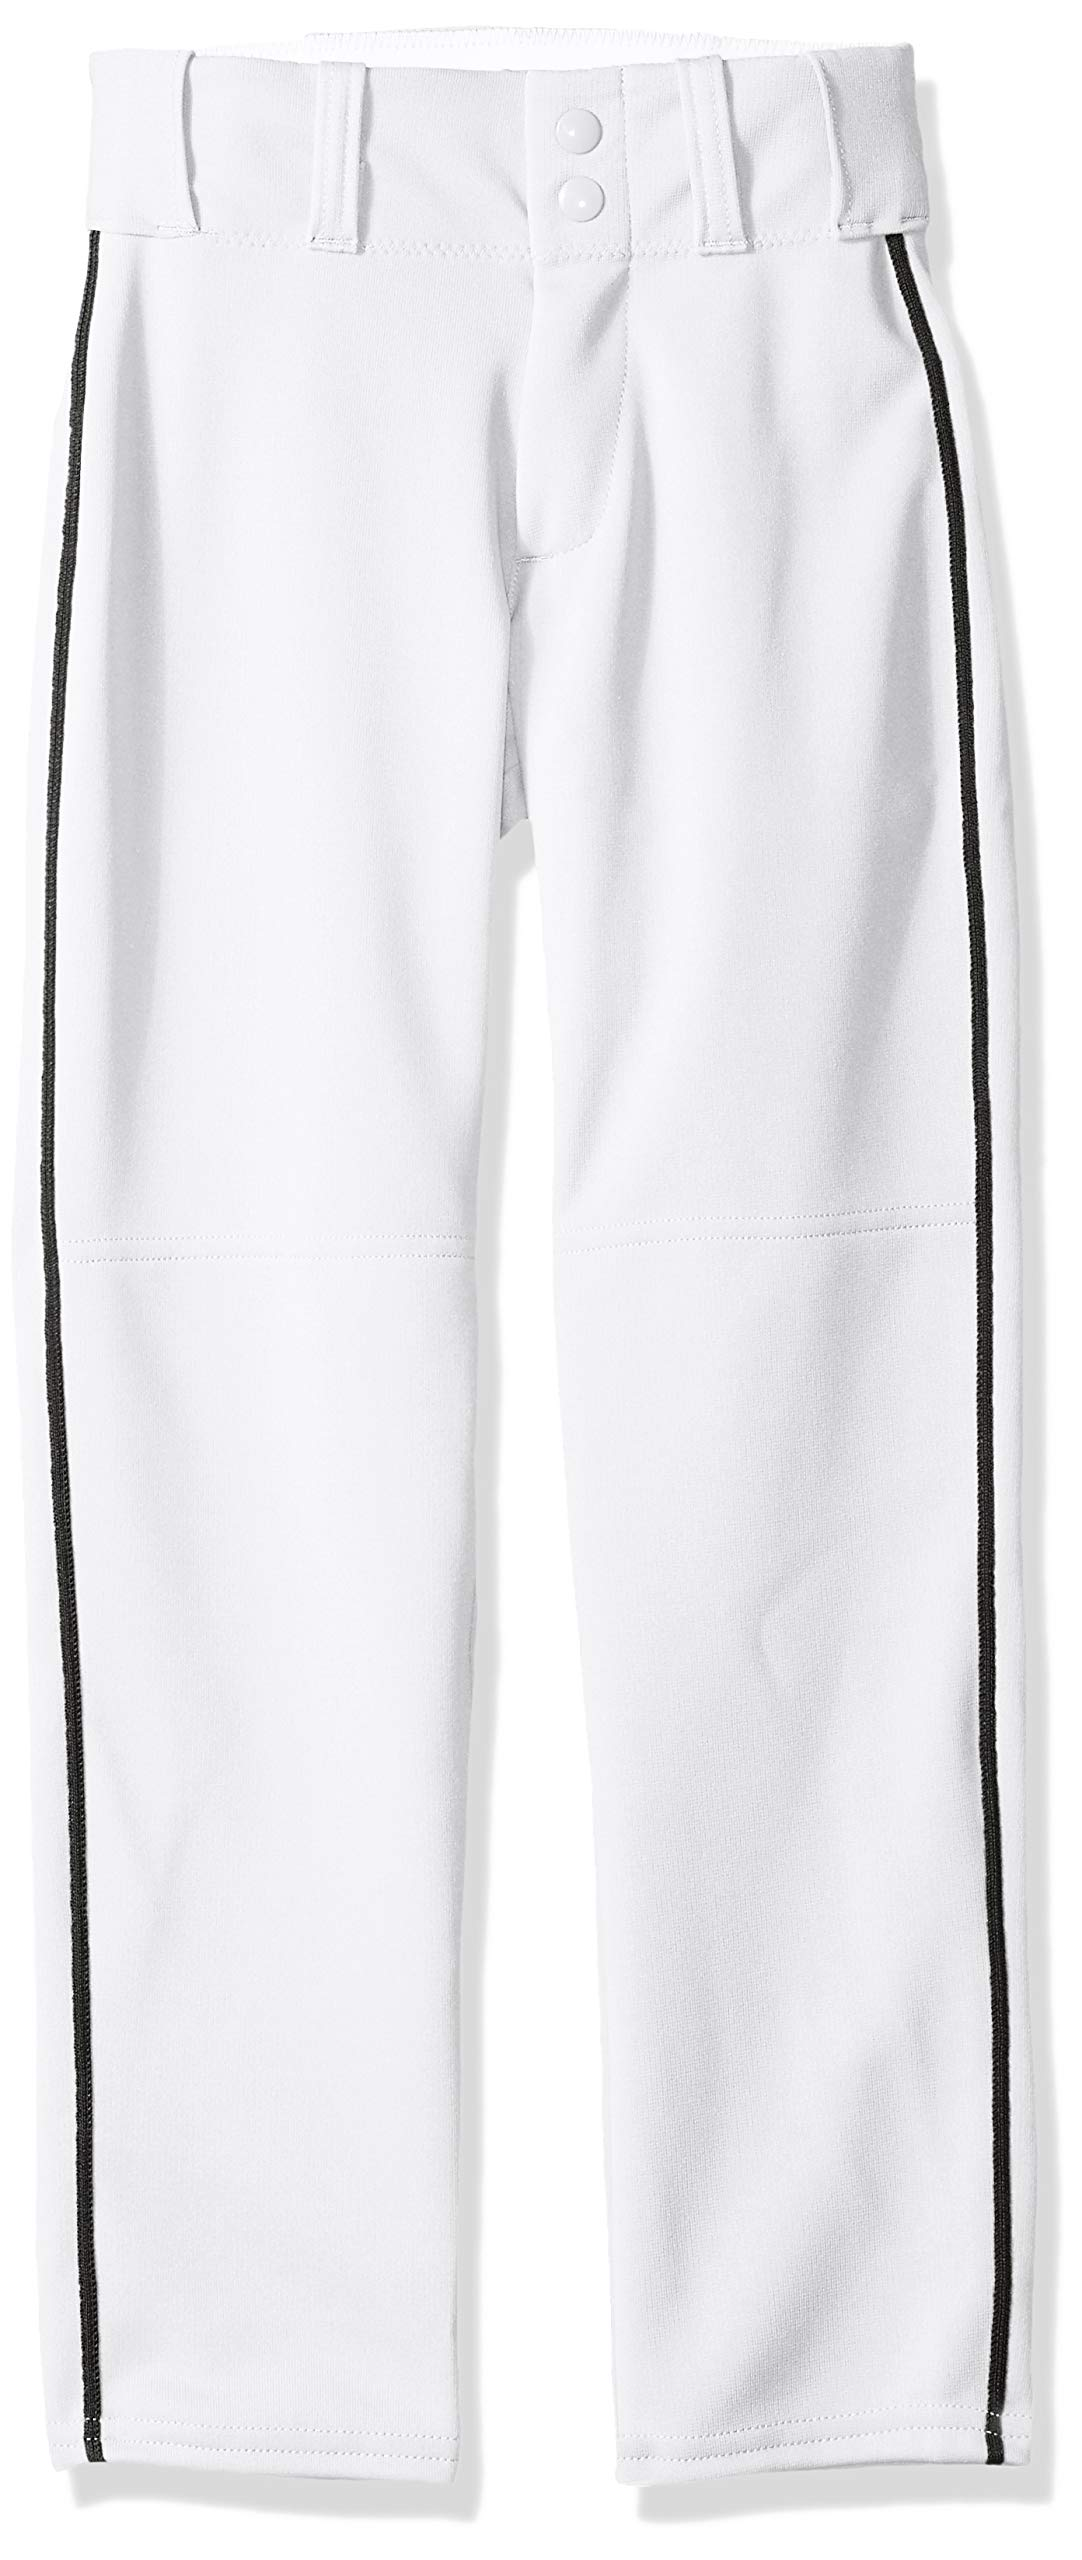 Alleson Ahtletic Boys Youth Baseball Pants with Braid, White/Black, Large by Alleson Athletic